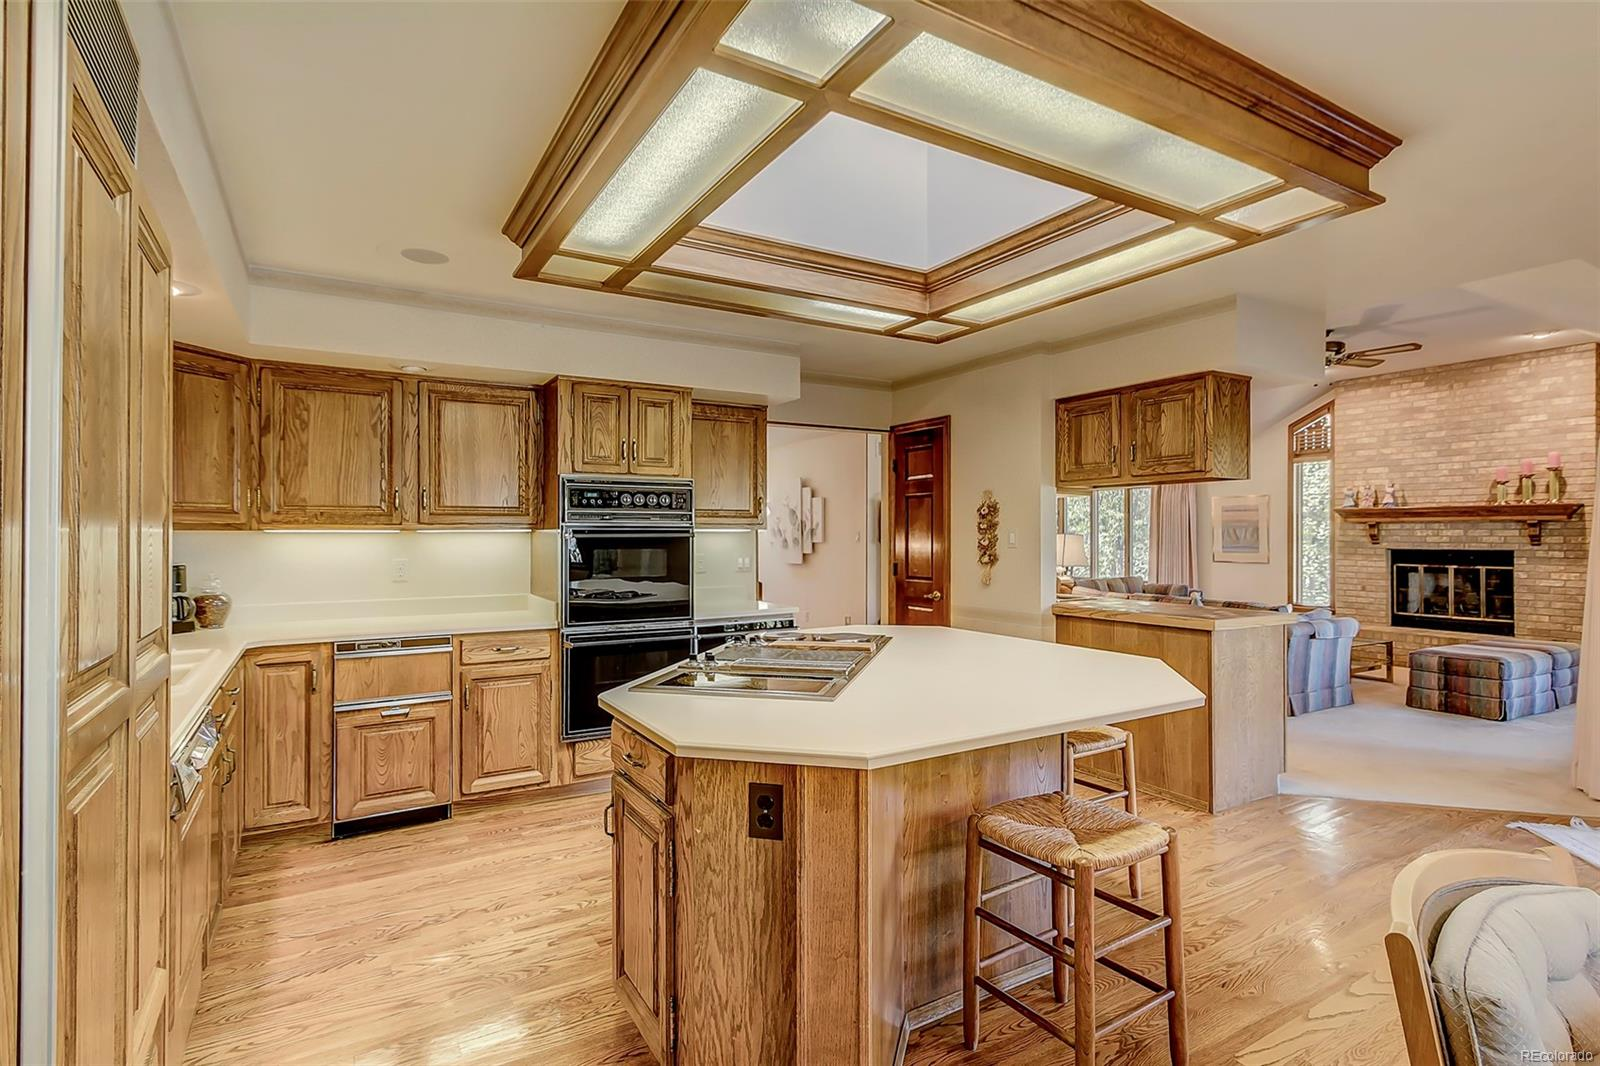 Large kitchen with island - plenty of work space